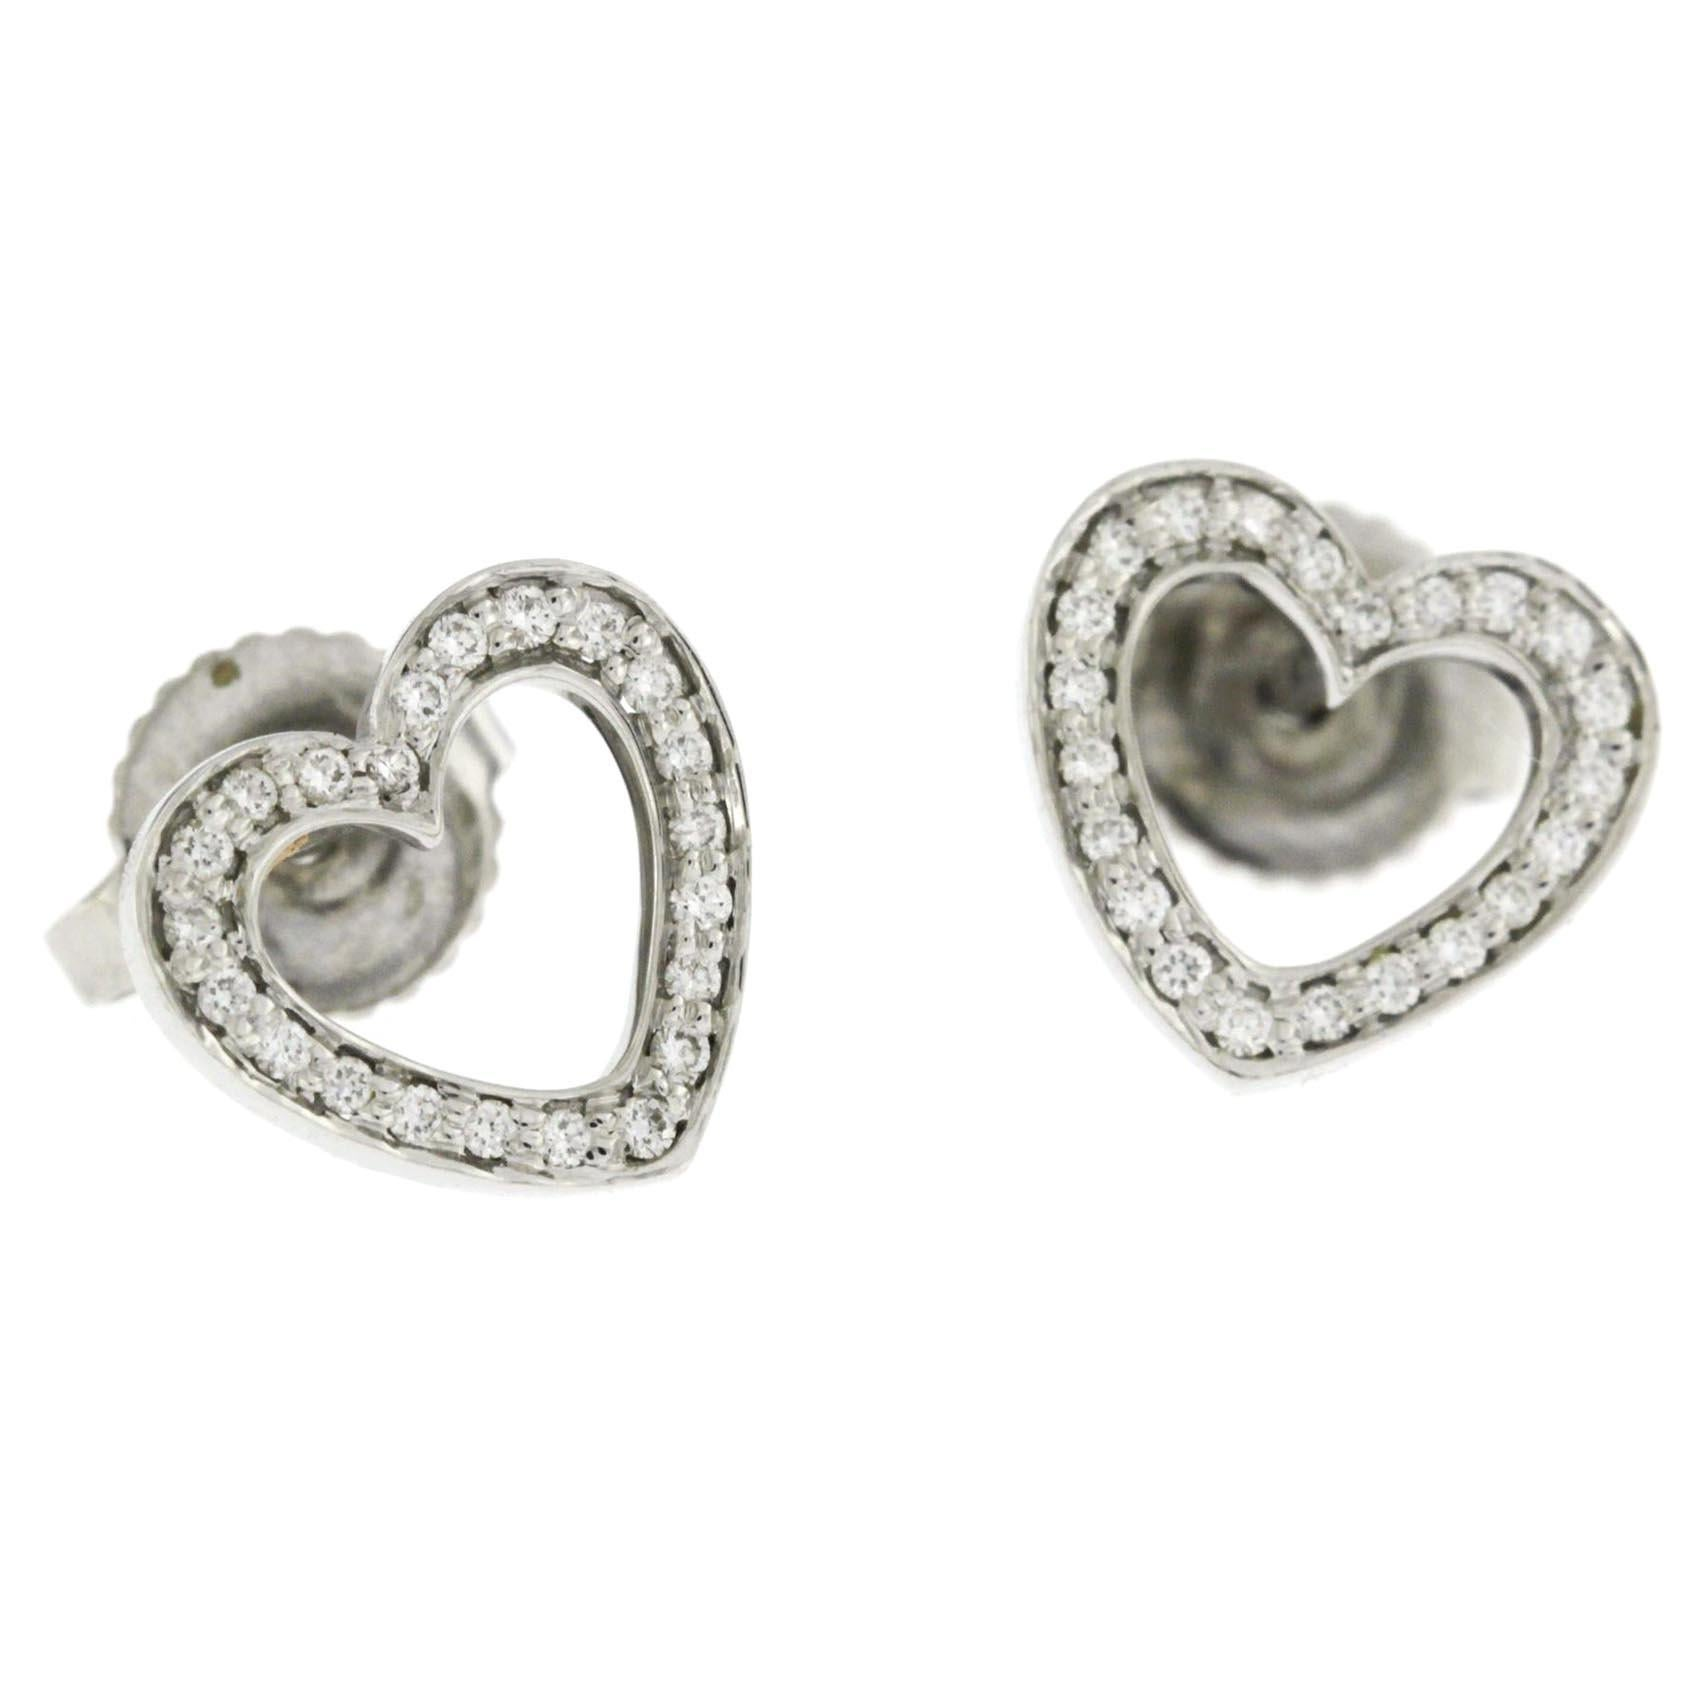 dc3beac50 Tiffany & Co. Earrings - 377 For Sale at 1stdibs